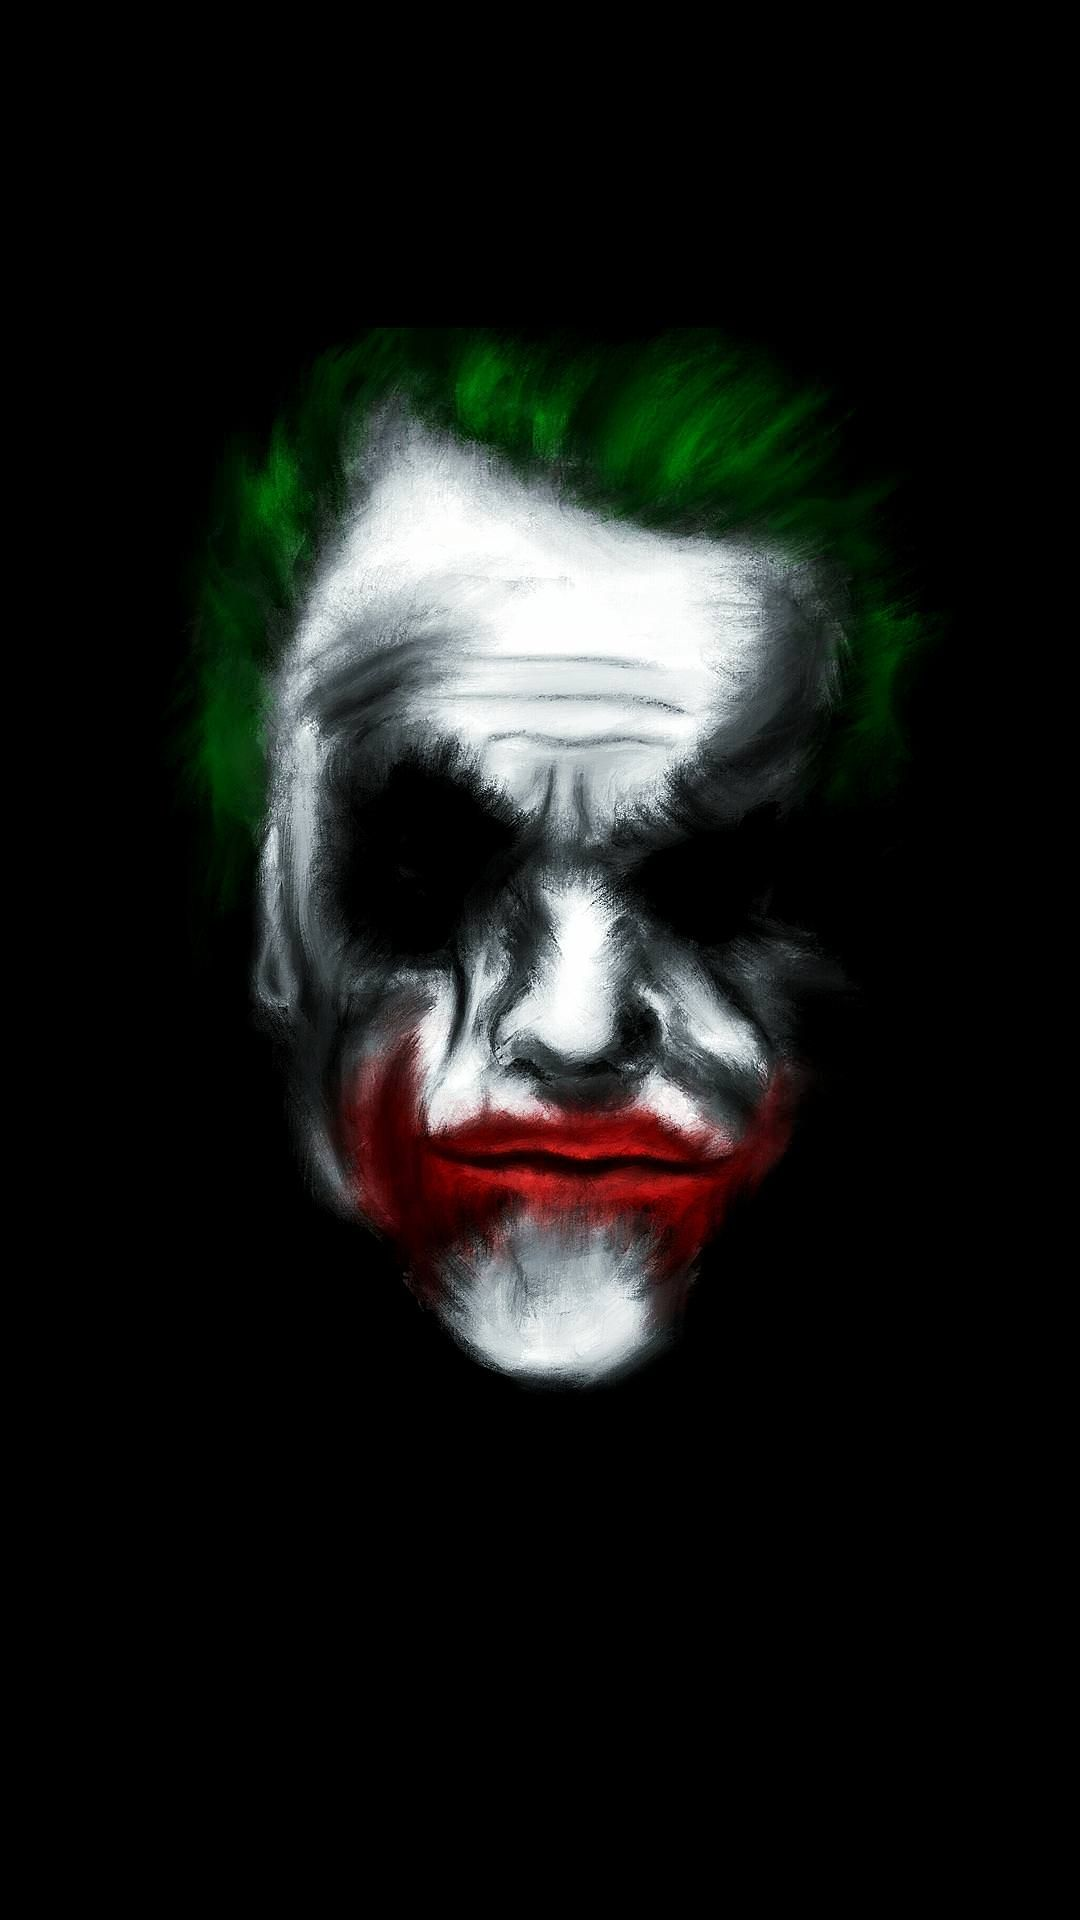 The Joker Amoled Wallpaper Oc 19201080 Psychedelic Illustration Joker Wallpaper